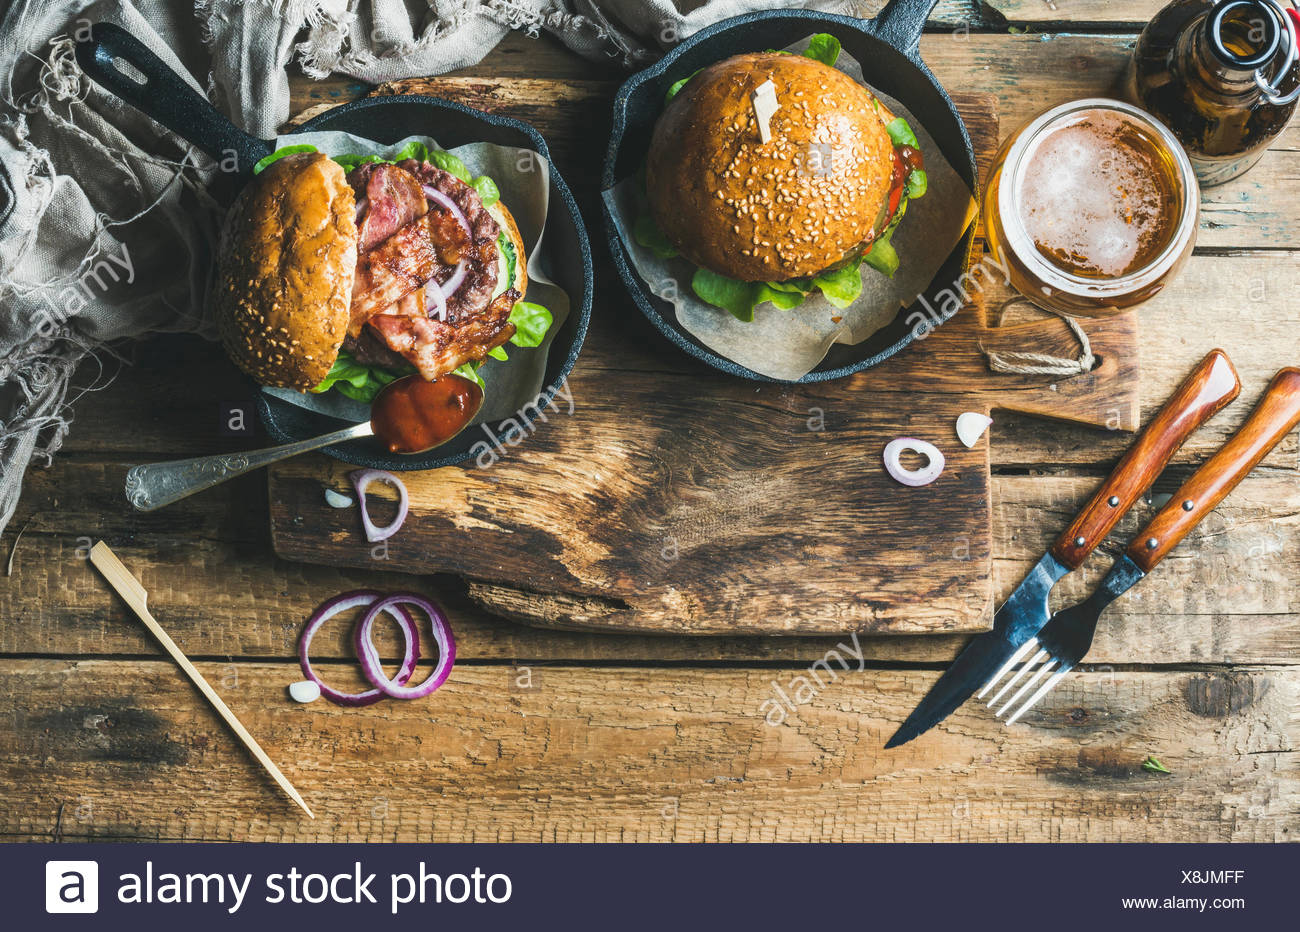 Homemade beef burgers with crispy bacon and vegetables in small pans and glass of wheat beer on rustic serving board over shabby - Stock Image